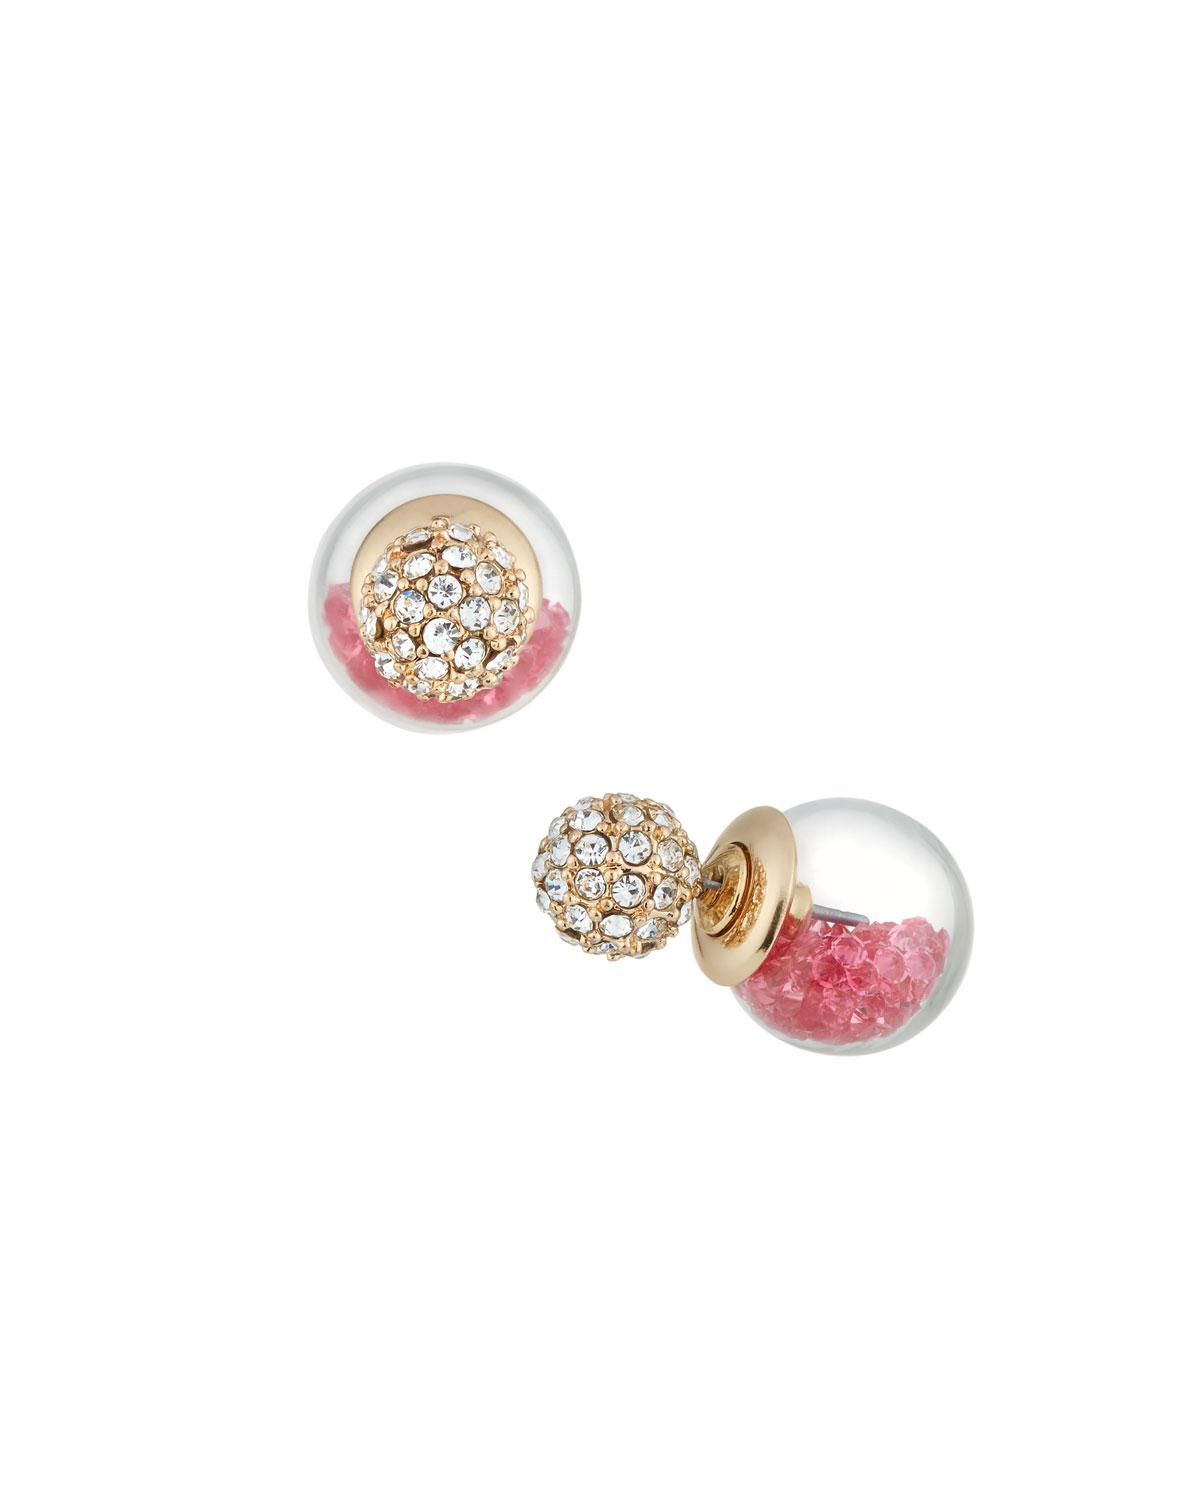 Lydell Nyc Green Crackle Stud Earrings